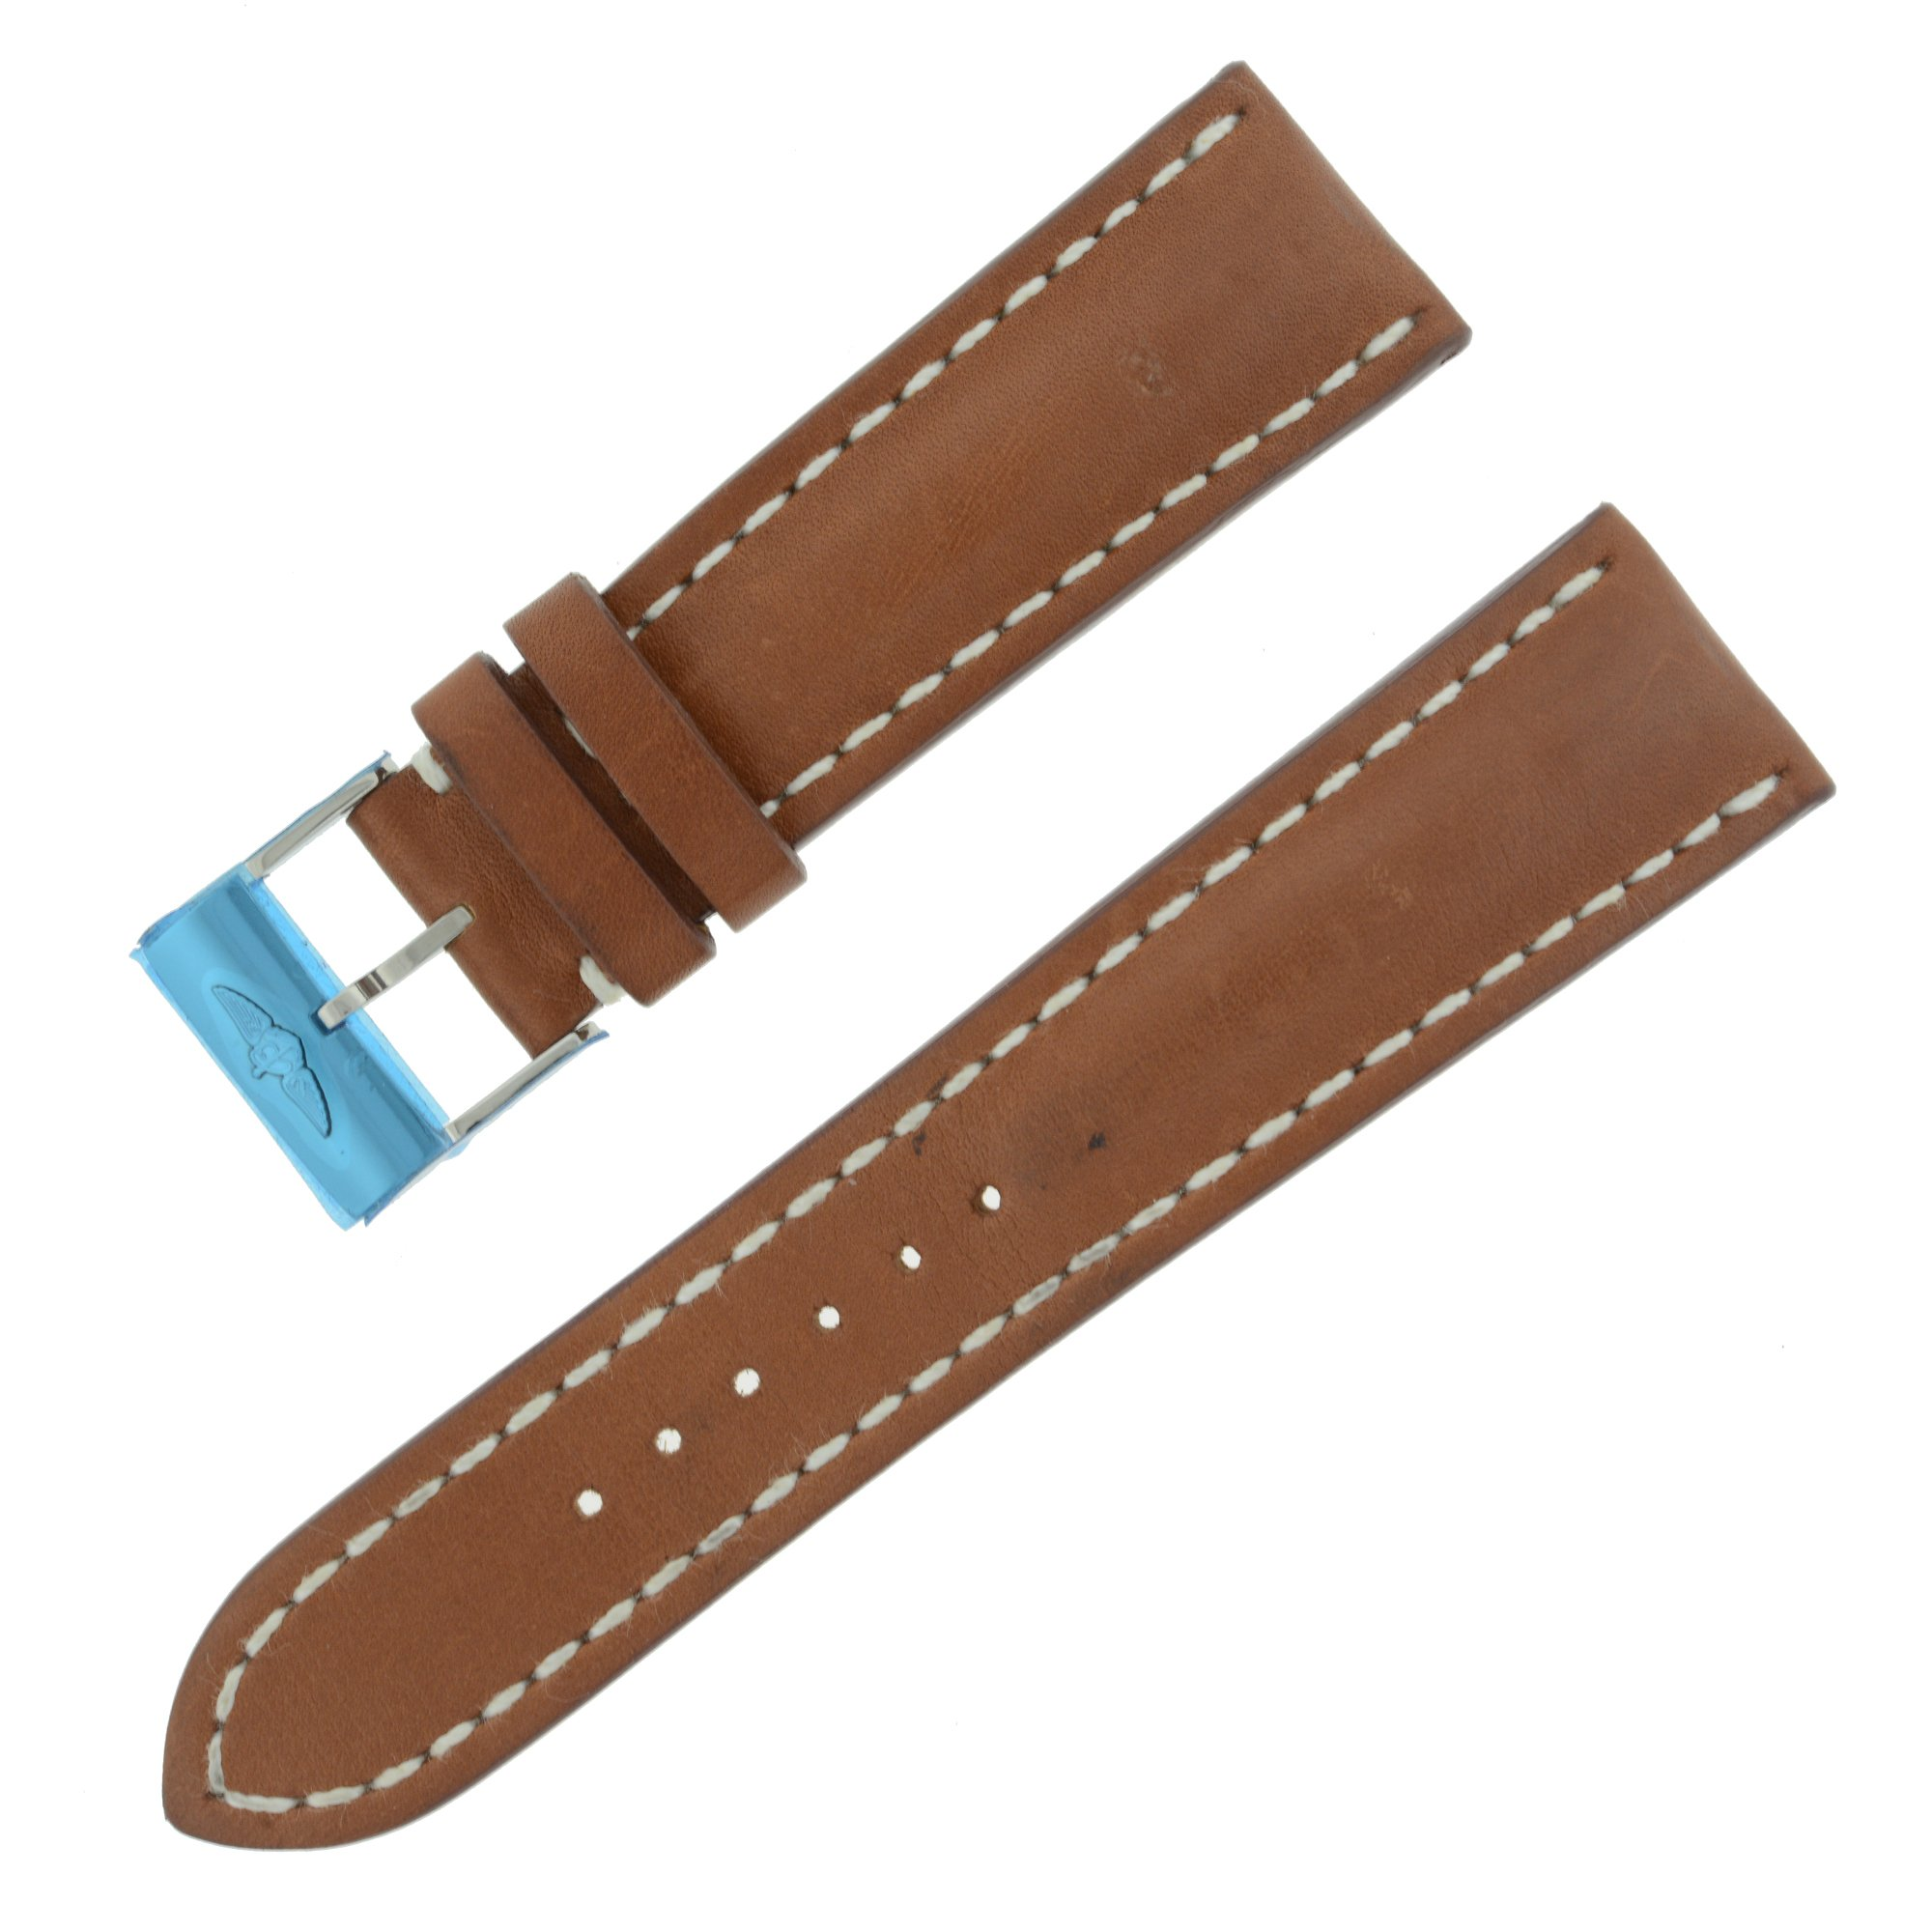 Breitling 24 - 20 mm Brown Leather Strap